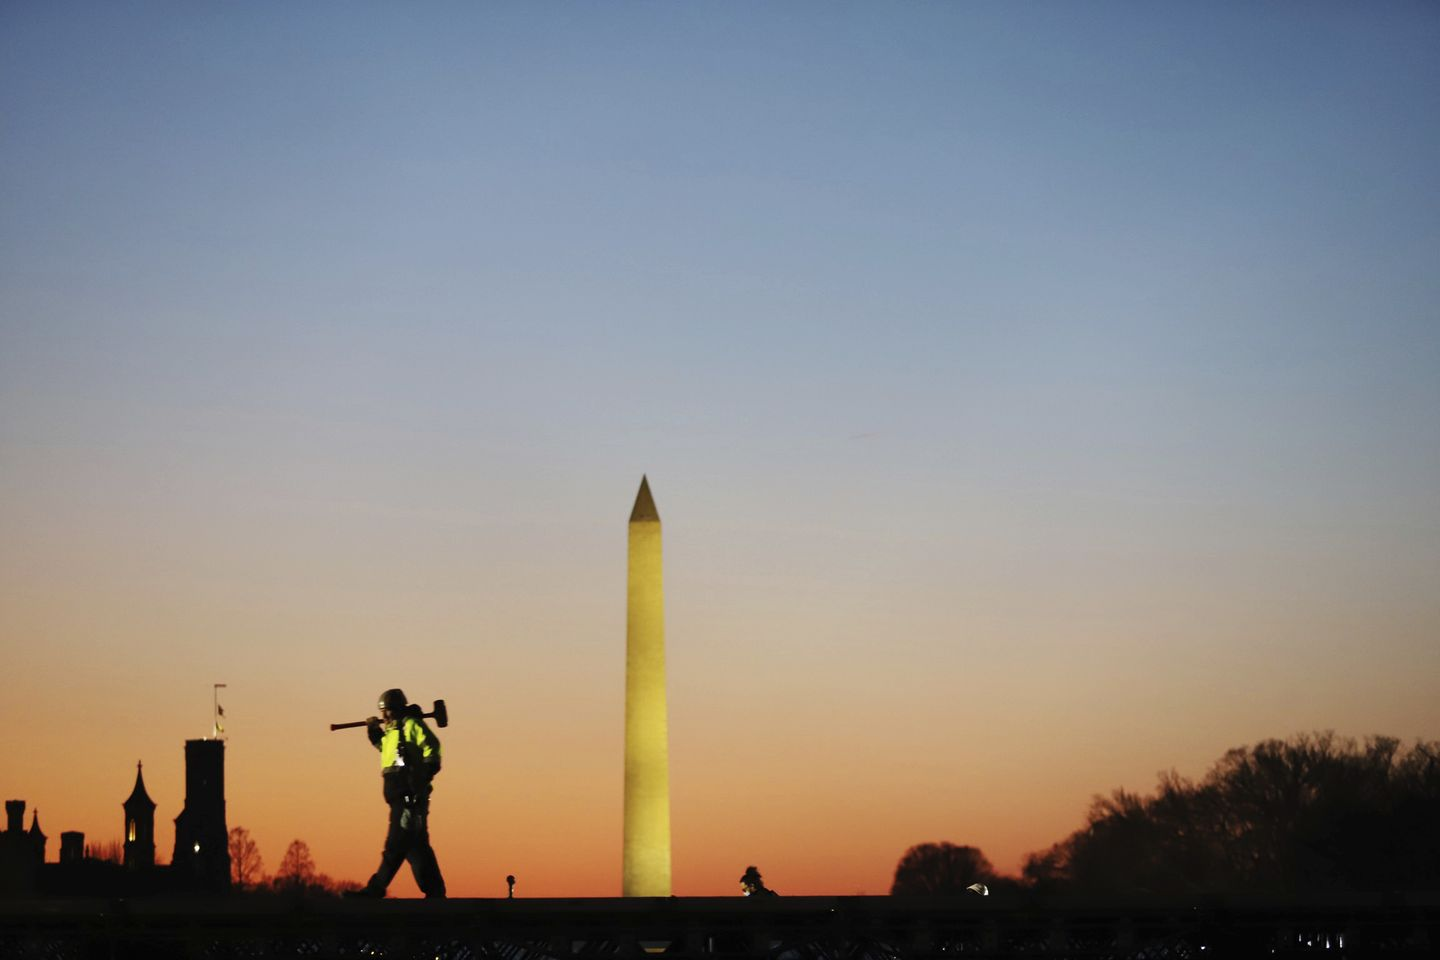 National Mall closed through Inauguration Day but demonstrations allowed, Park Service announces